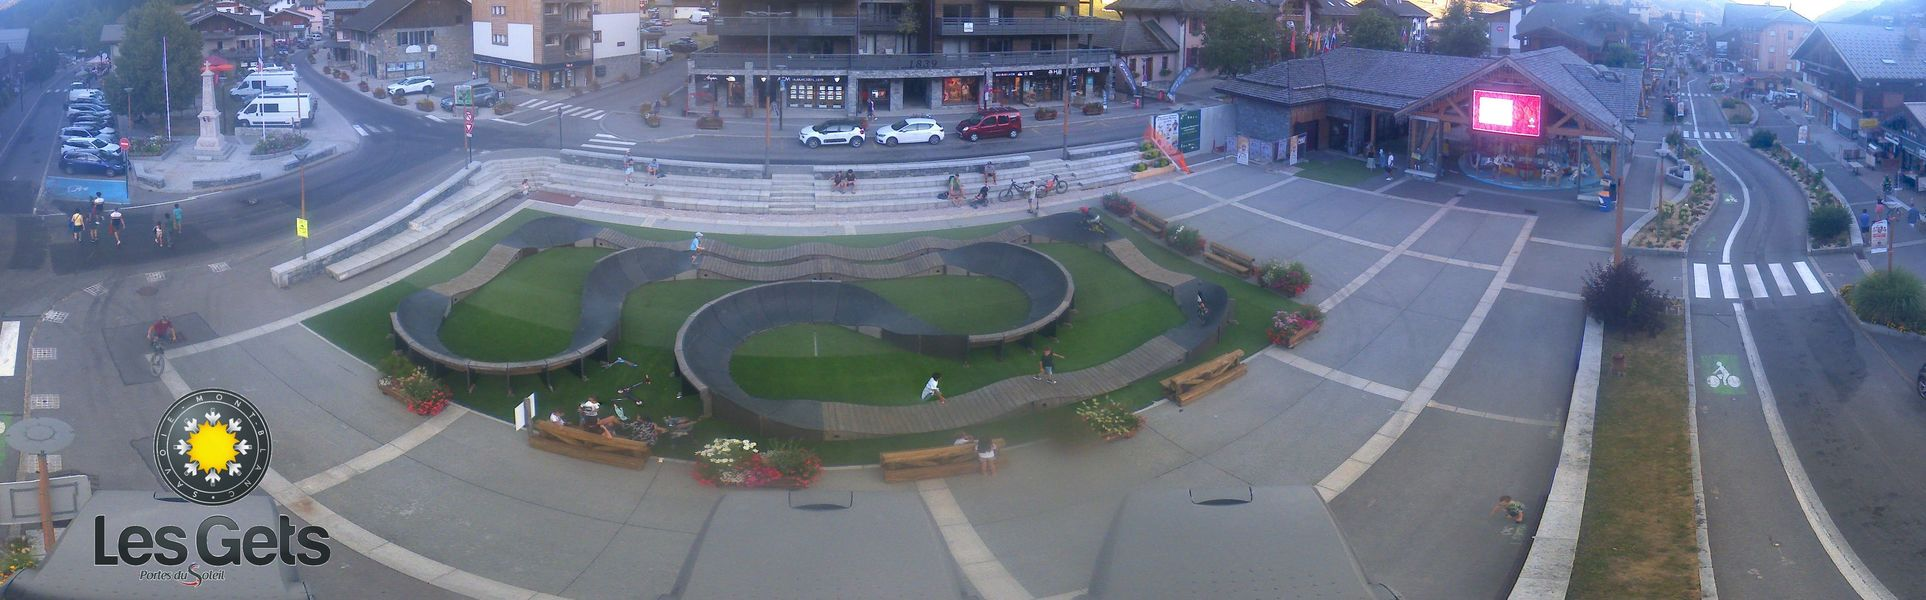 Webcam overlooking the ice rink in the centre of Les Gets